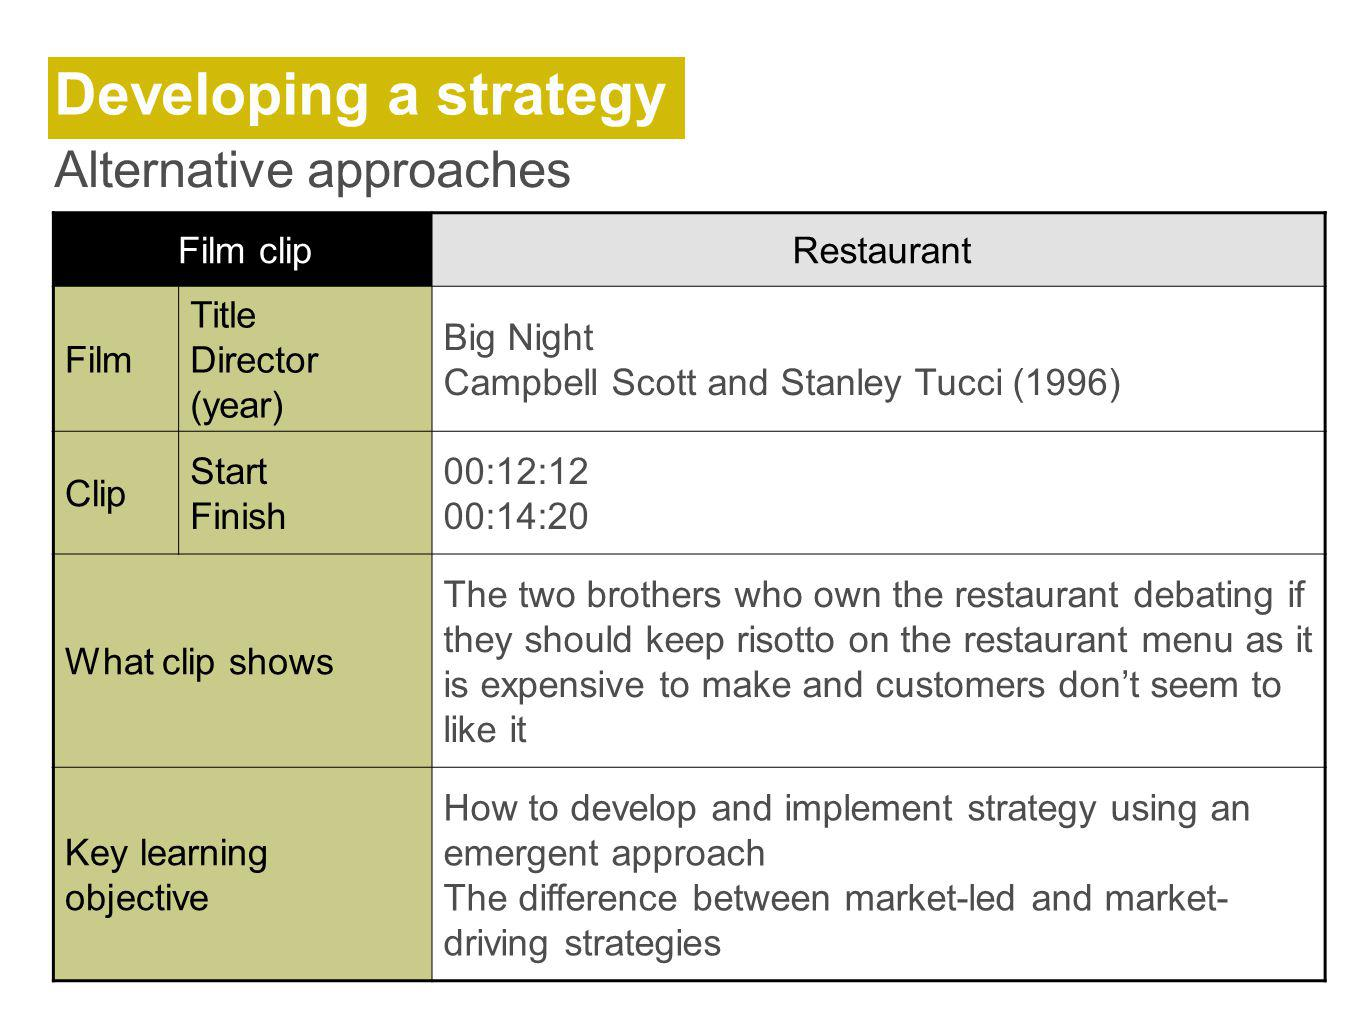 Developing a strategy Alternative approaches Film clipRestaurant Film Title Director (year) Big Night Campbell Scott and Stanley Tucci (1996) Clip Start Finish 00:12:12 00:14:20 What clip shows The two brothers who own the restaurant debating if they should keep risotto on the restaurant menu as it is expensive to make and customers dont seem to like it Key learning objective How to develop and implement strategy using an emergent approach The difference between market-led and market- driving strategies